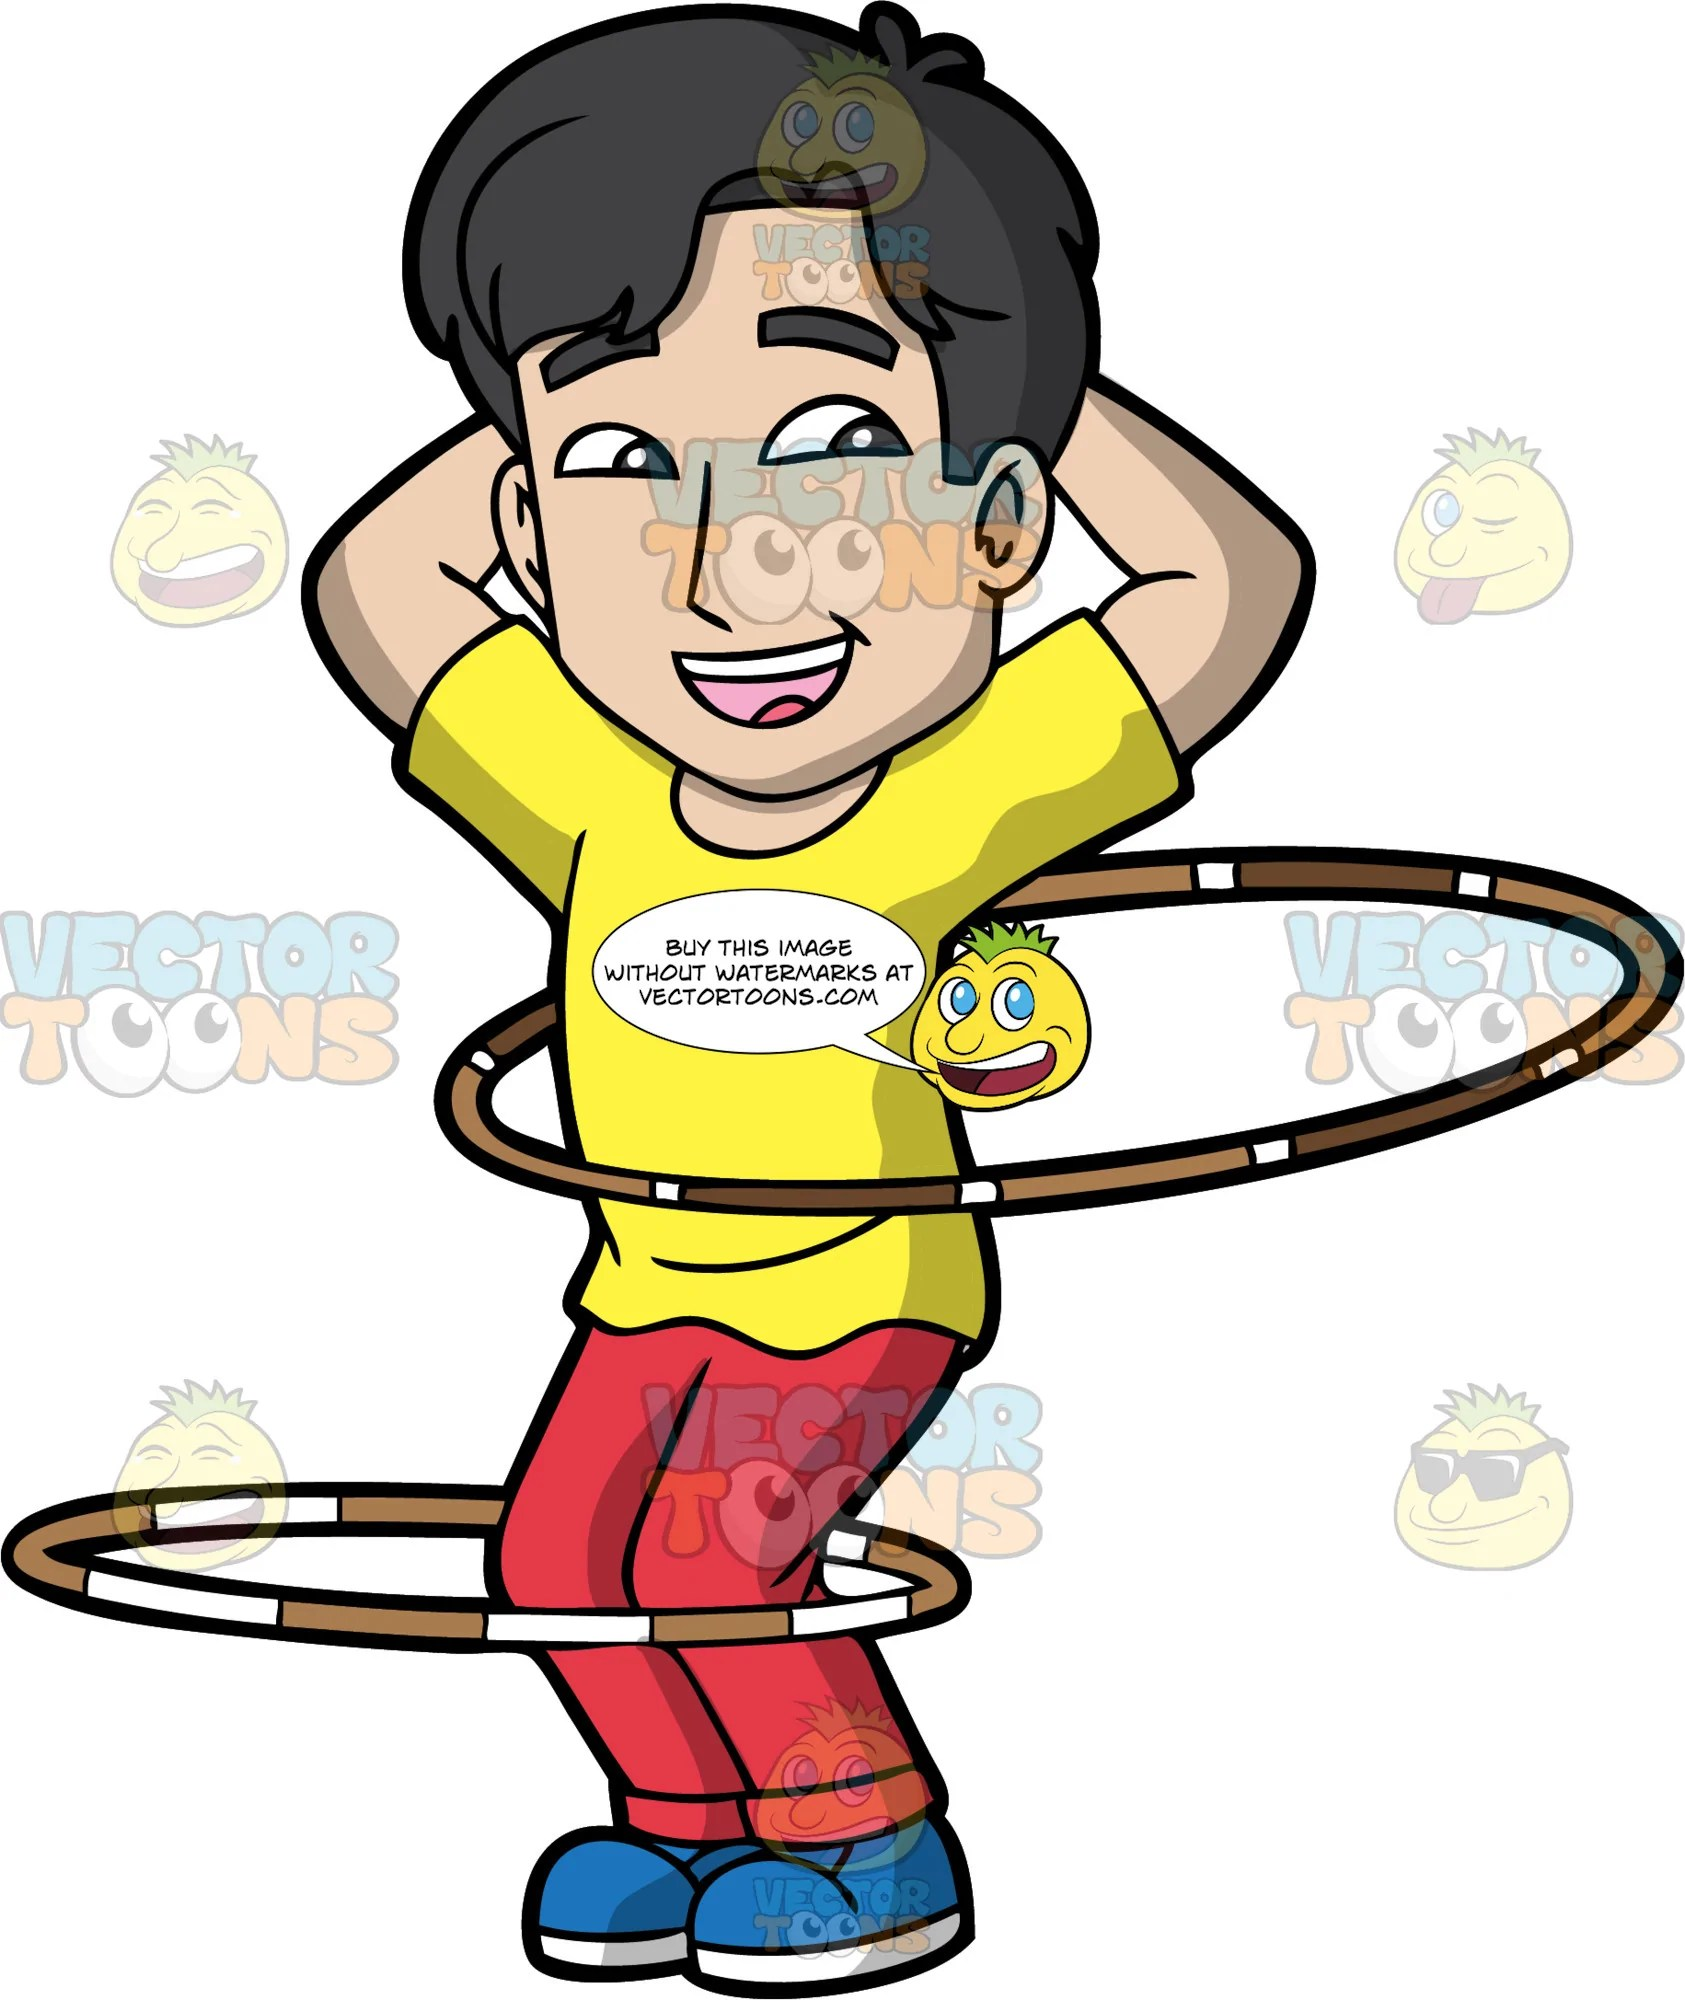 small resolution of a joyful guy twirling hula hoops a man with black hair wearing a yellow